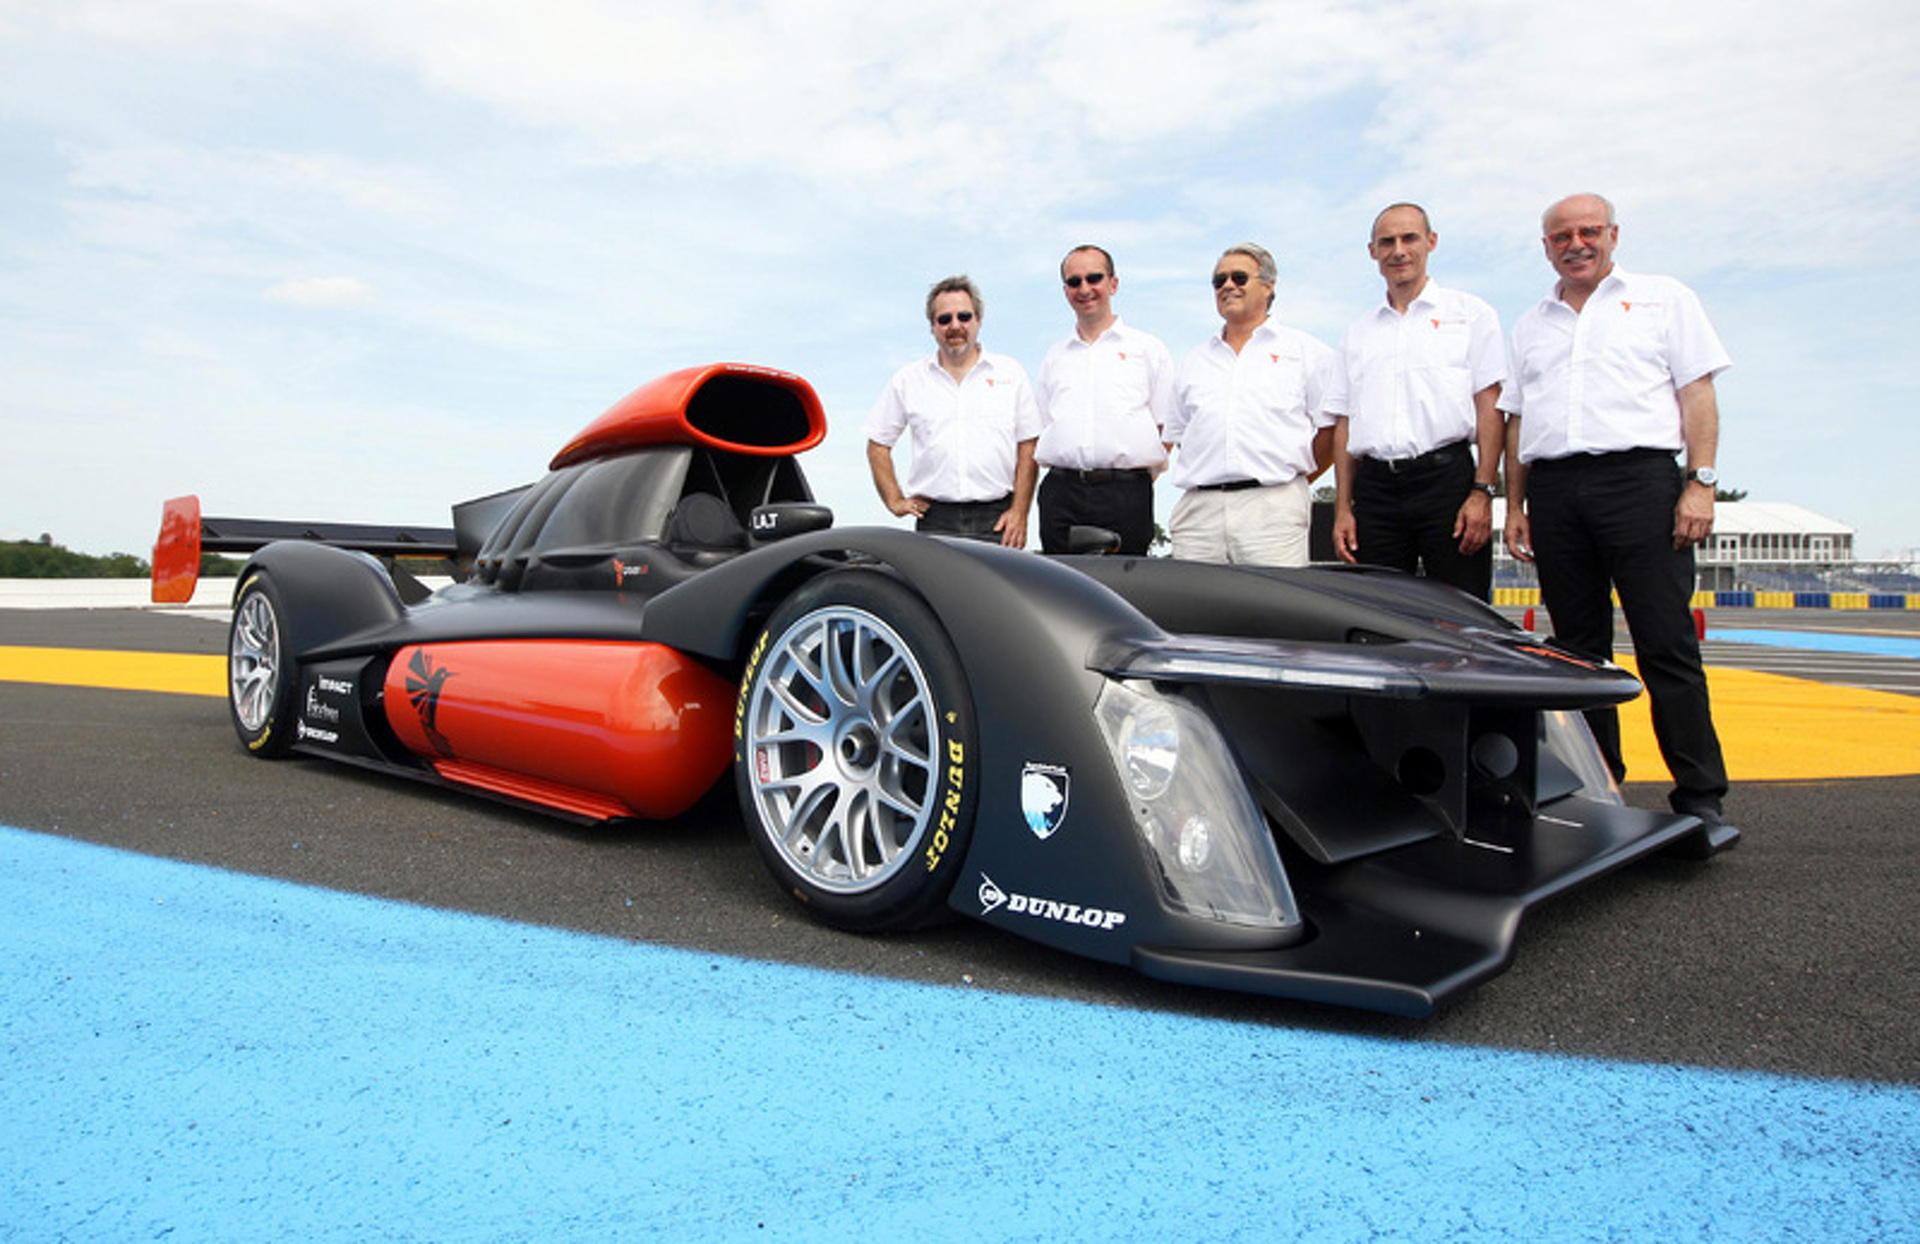 A Hydrogen Rocket Enters Le Mans Race